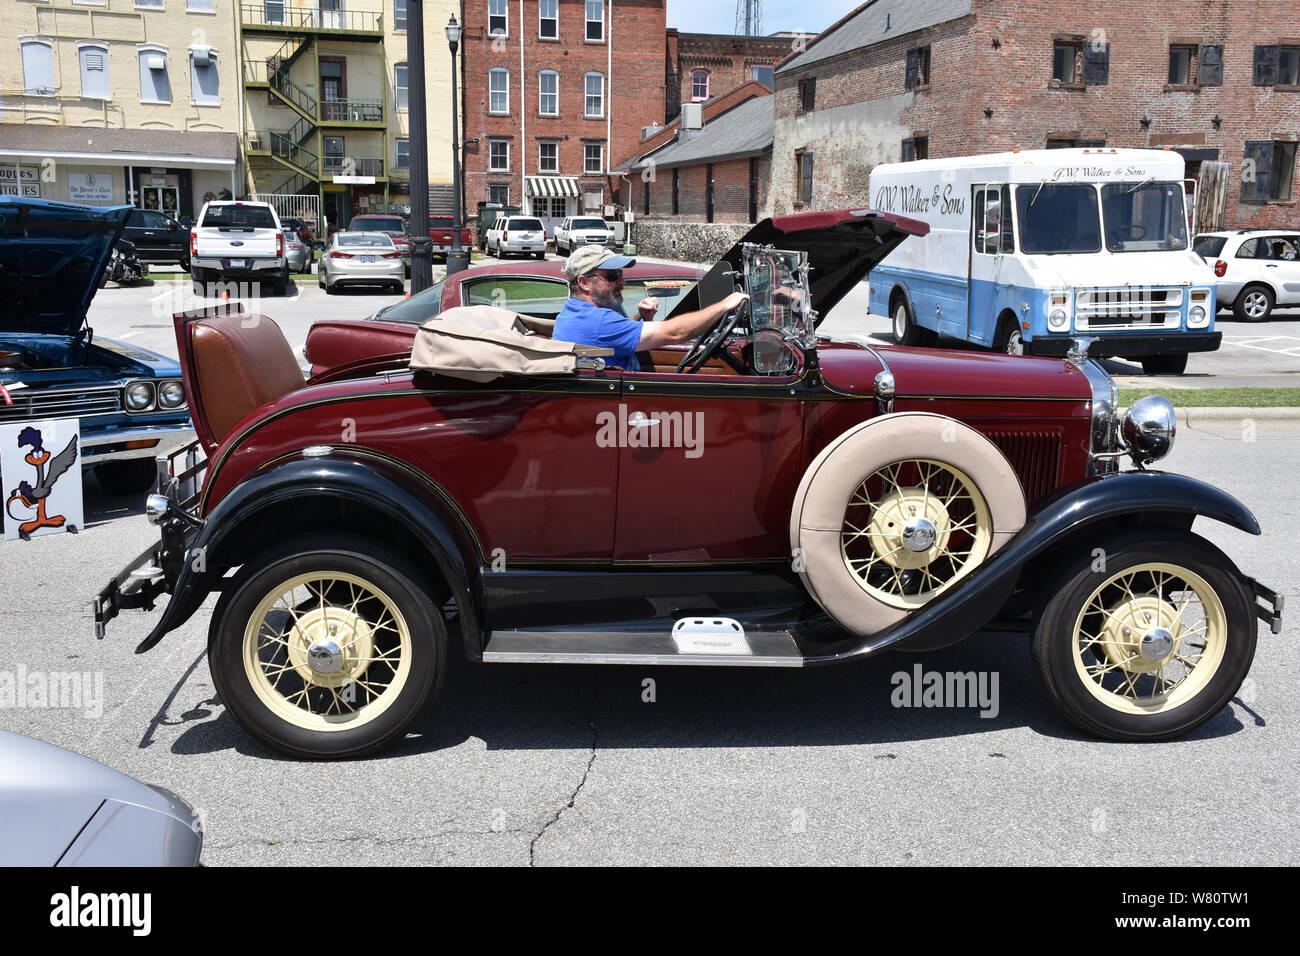 A Vintage Ford car with a Rumble Seat for extra passengers. Stock Photo